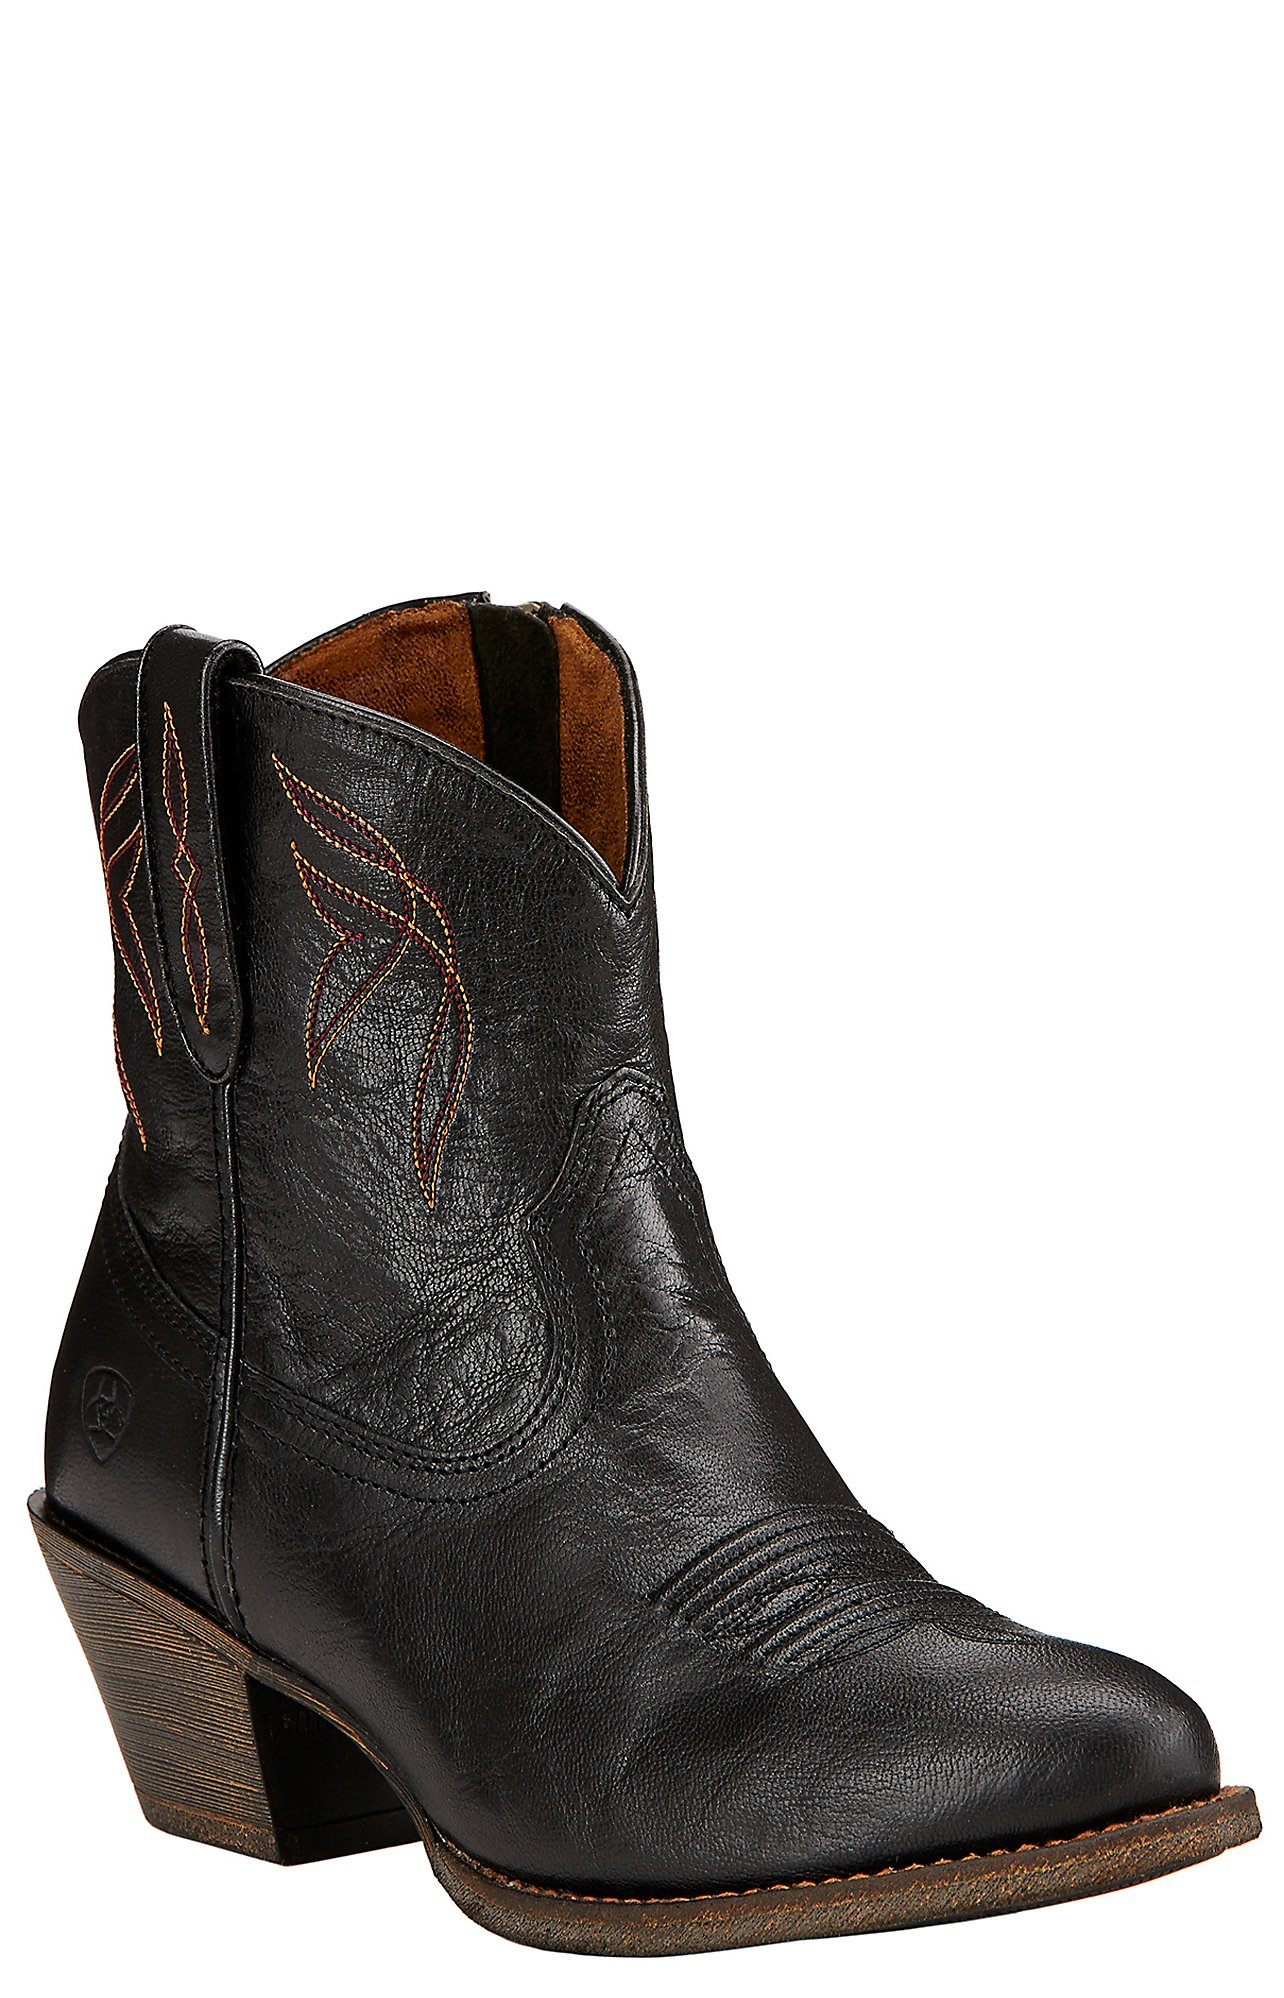 Ariat Darlin Ankle Boot (Women's)